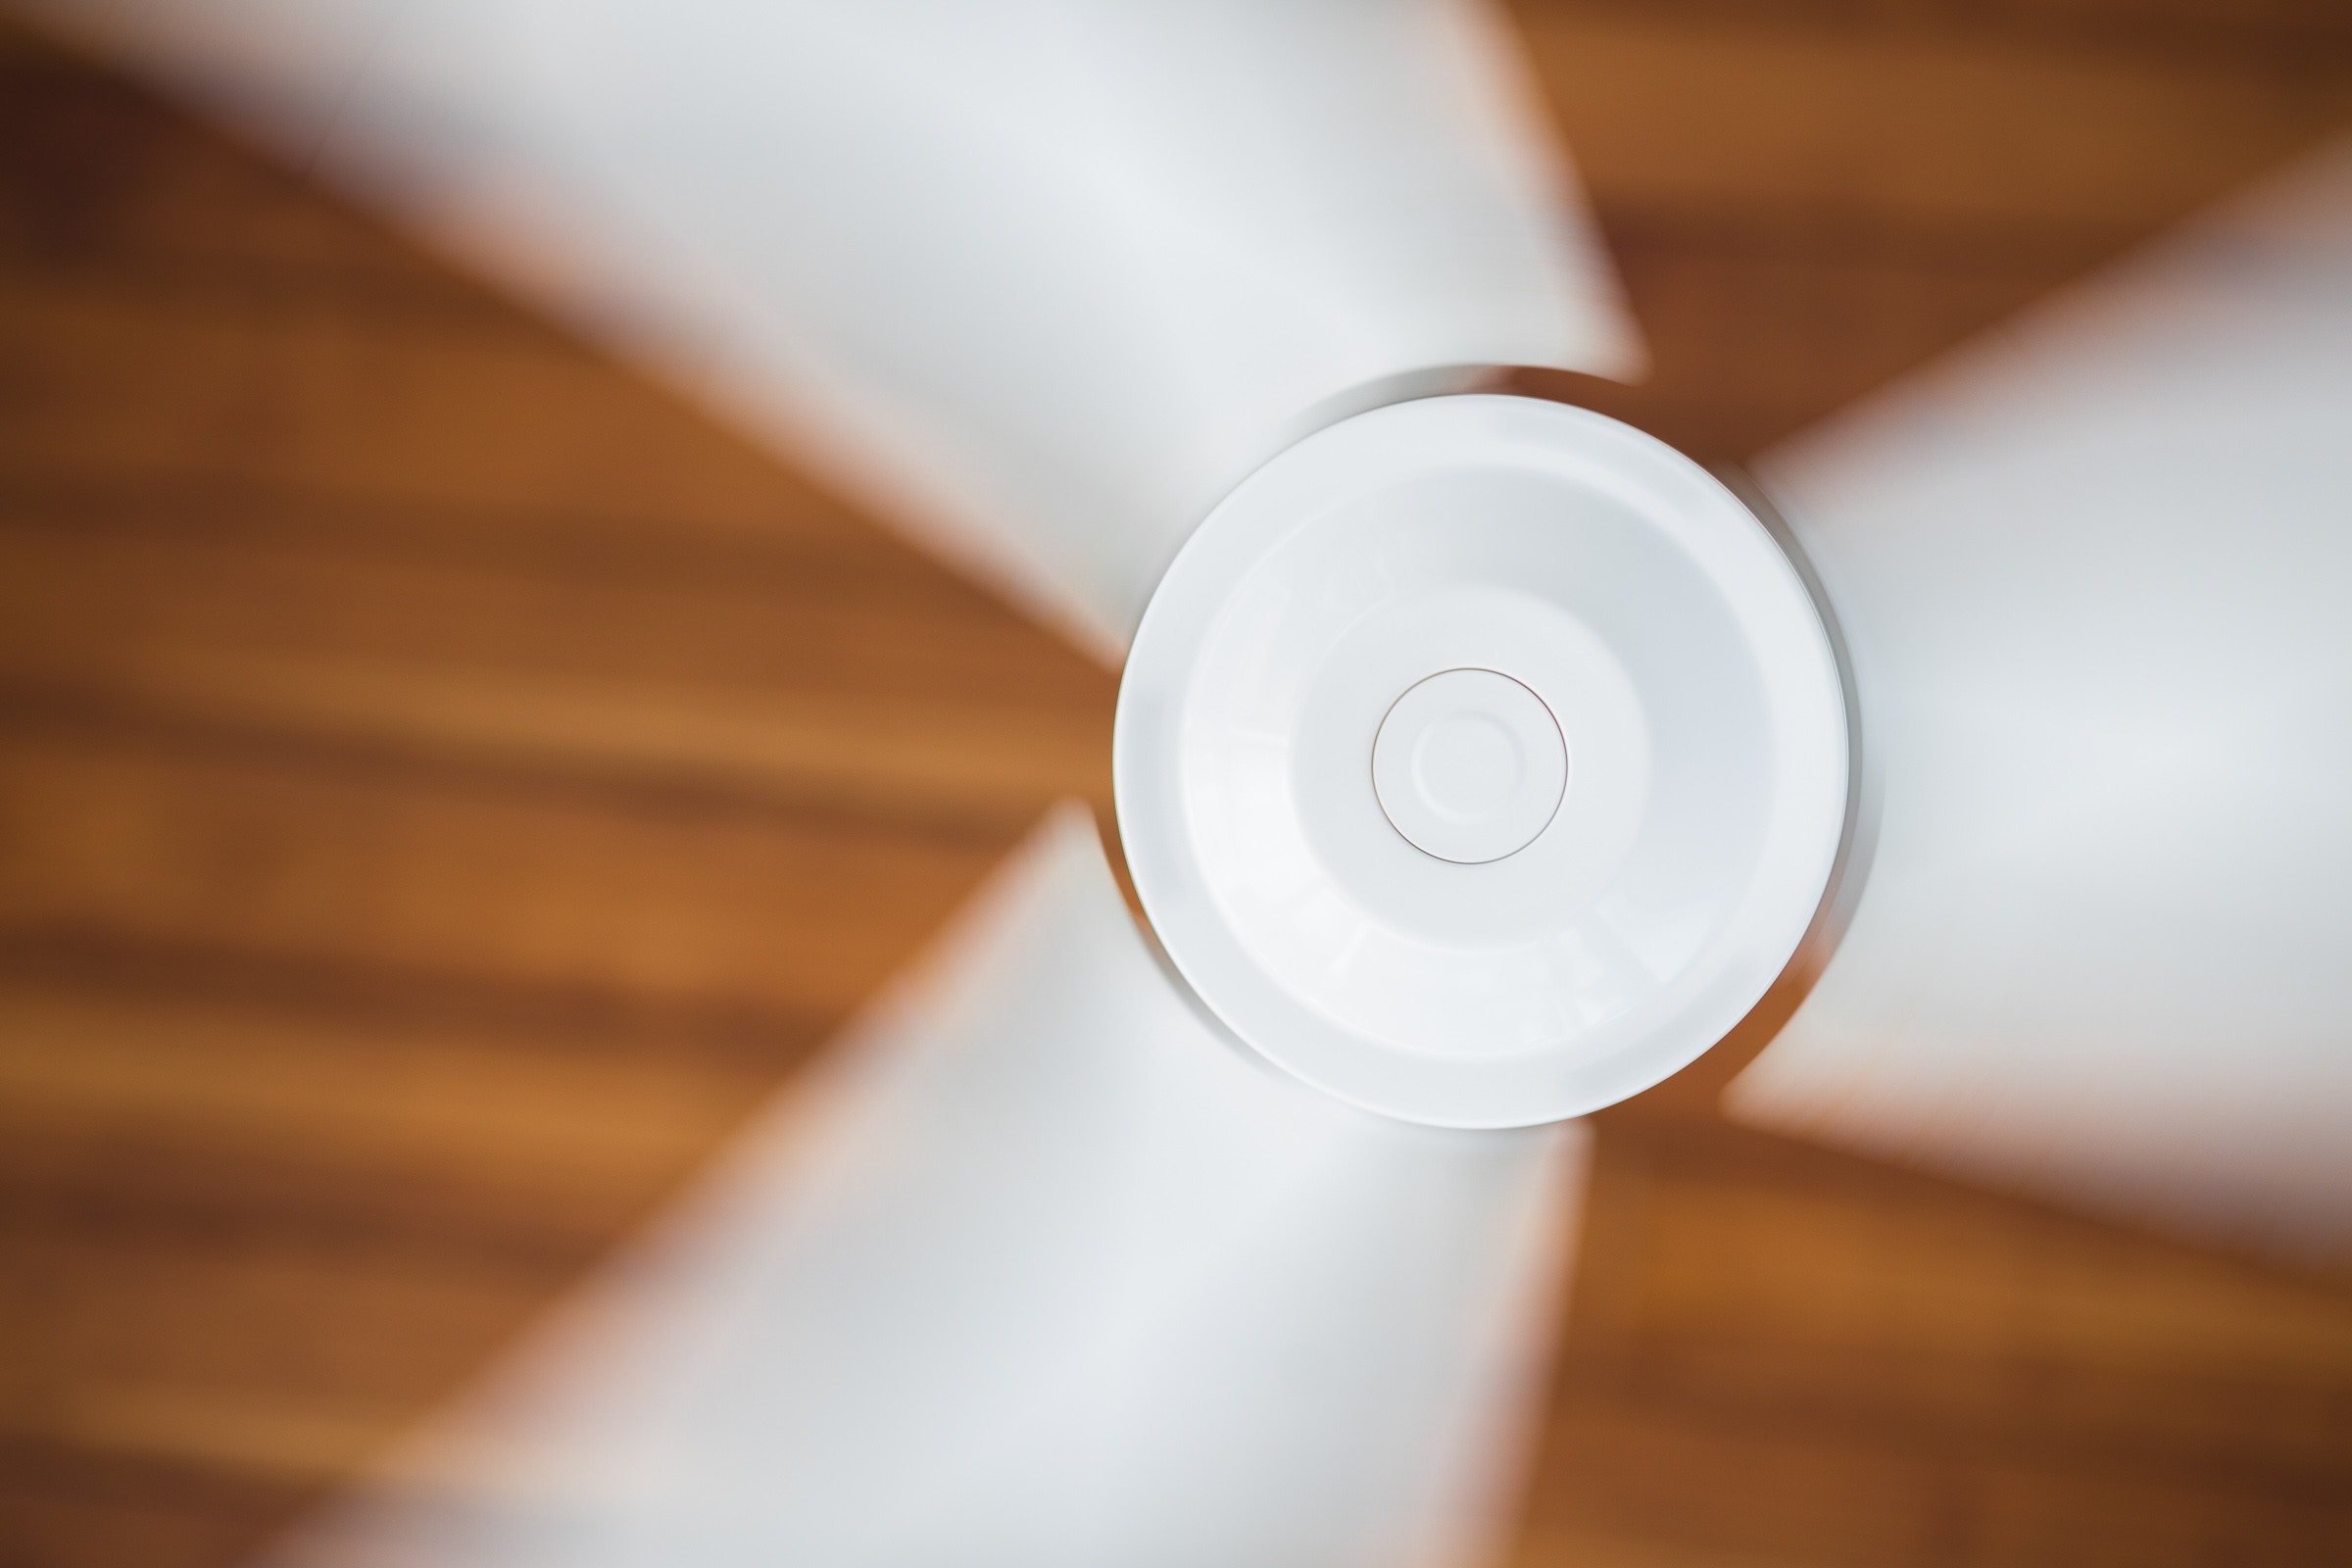 2.  Turn on a fan   The most important thing before going to bed is to make sure that the temperature of your bedroom is comfortable for you. Some people like warm room, but some prefer it to be a little bit cooler when they sleep. If it is in summer and the room is hot, you can use a ceiling fan or a small table fan to keep the air moving, which can help you fall asleep easily. Allowing fresh air into your room by opening a window a little bit can also be helpful. But, make sure you have a window net on the window to keep the bugs out.